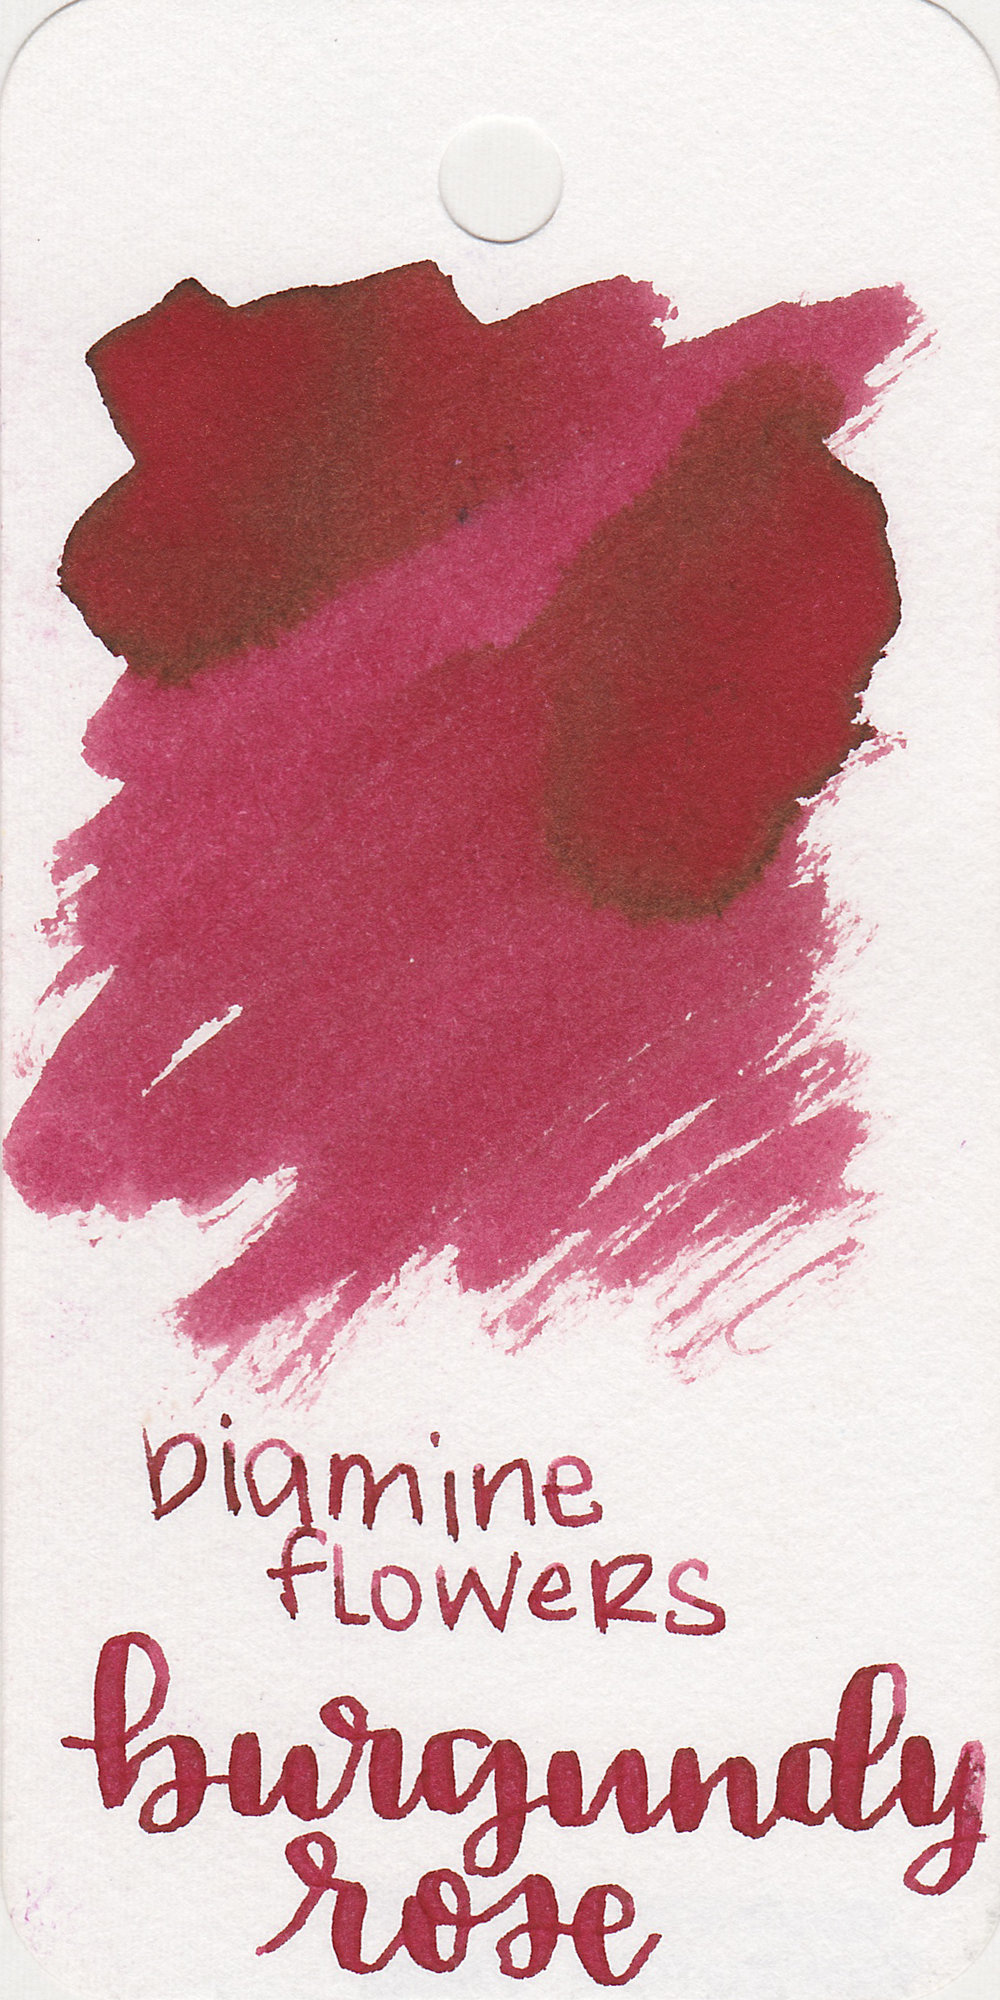 The color: - Burgundy Rose is a dark rose red.